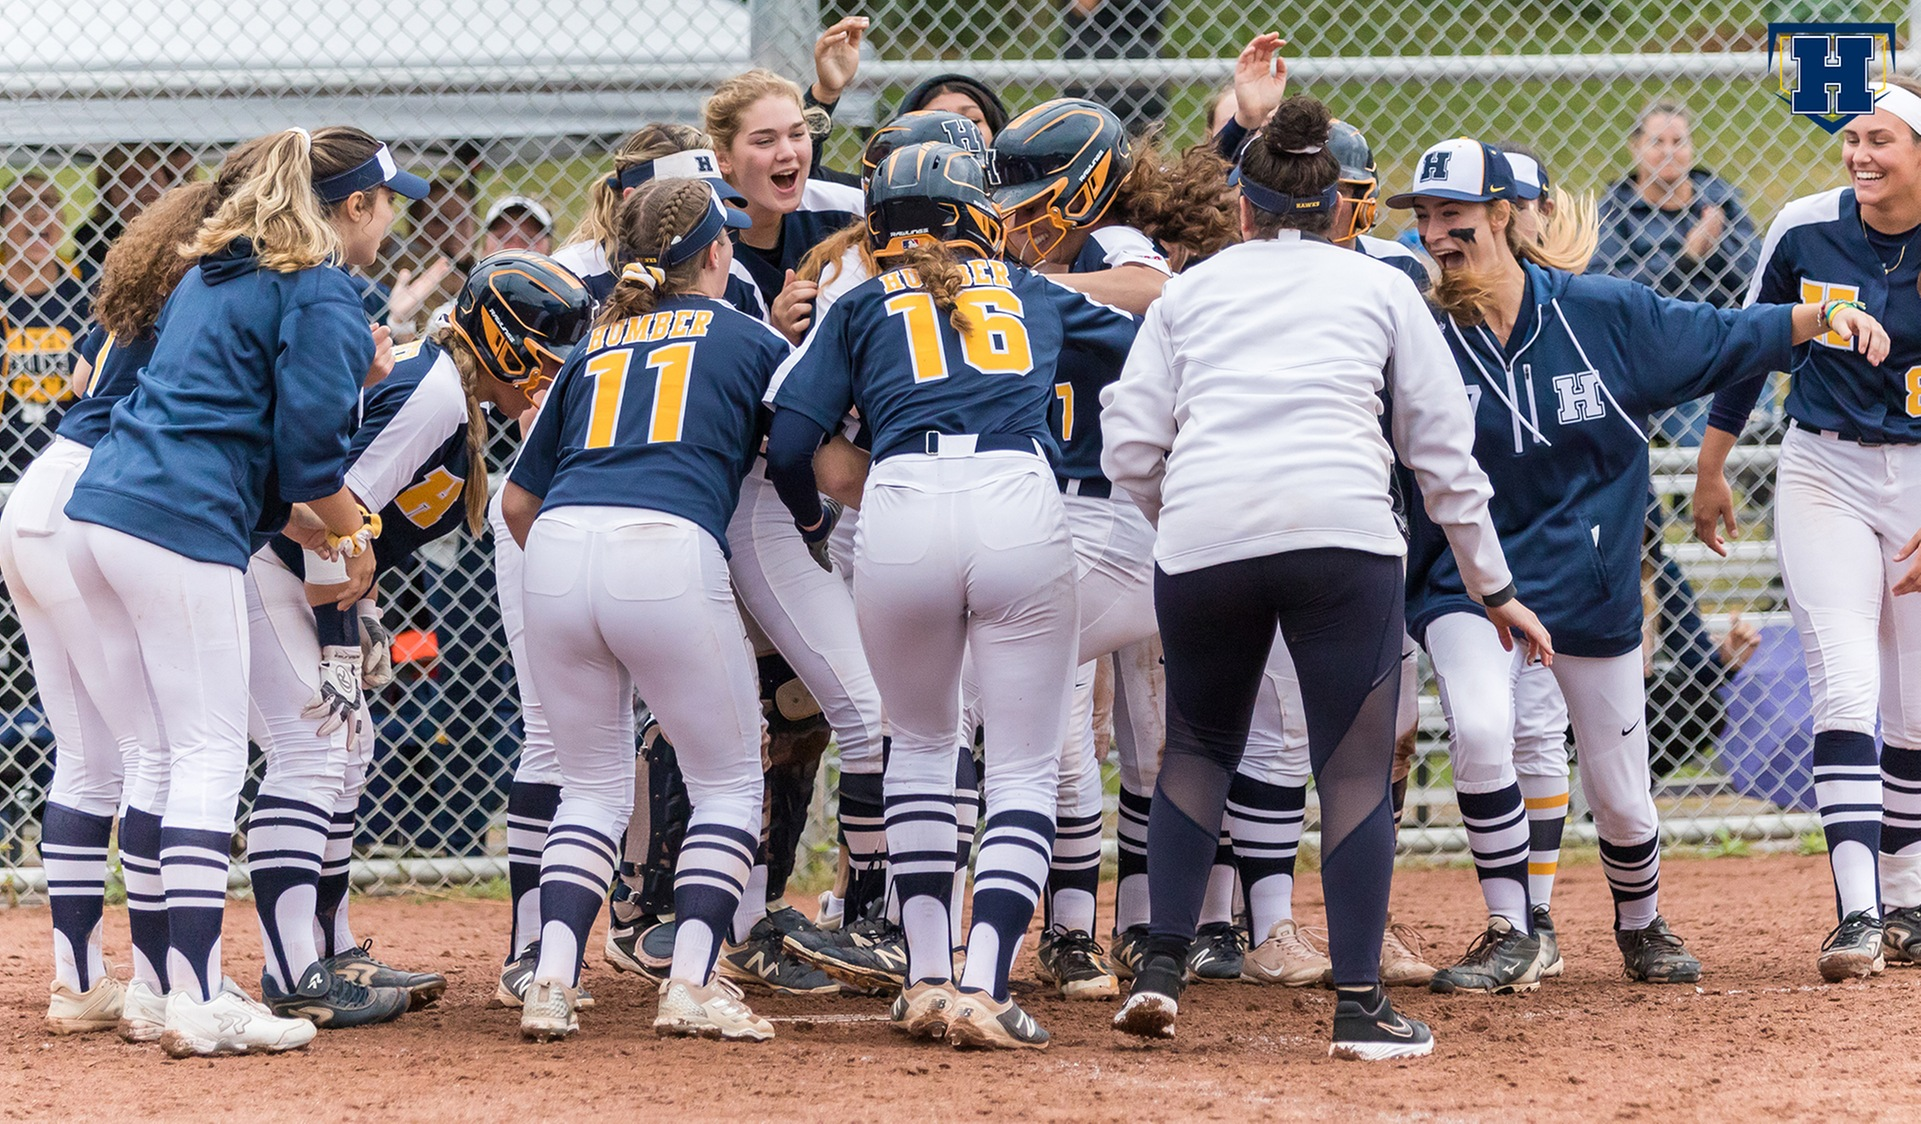 Softball Grabs Top Spot with Sweep of Durham